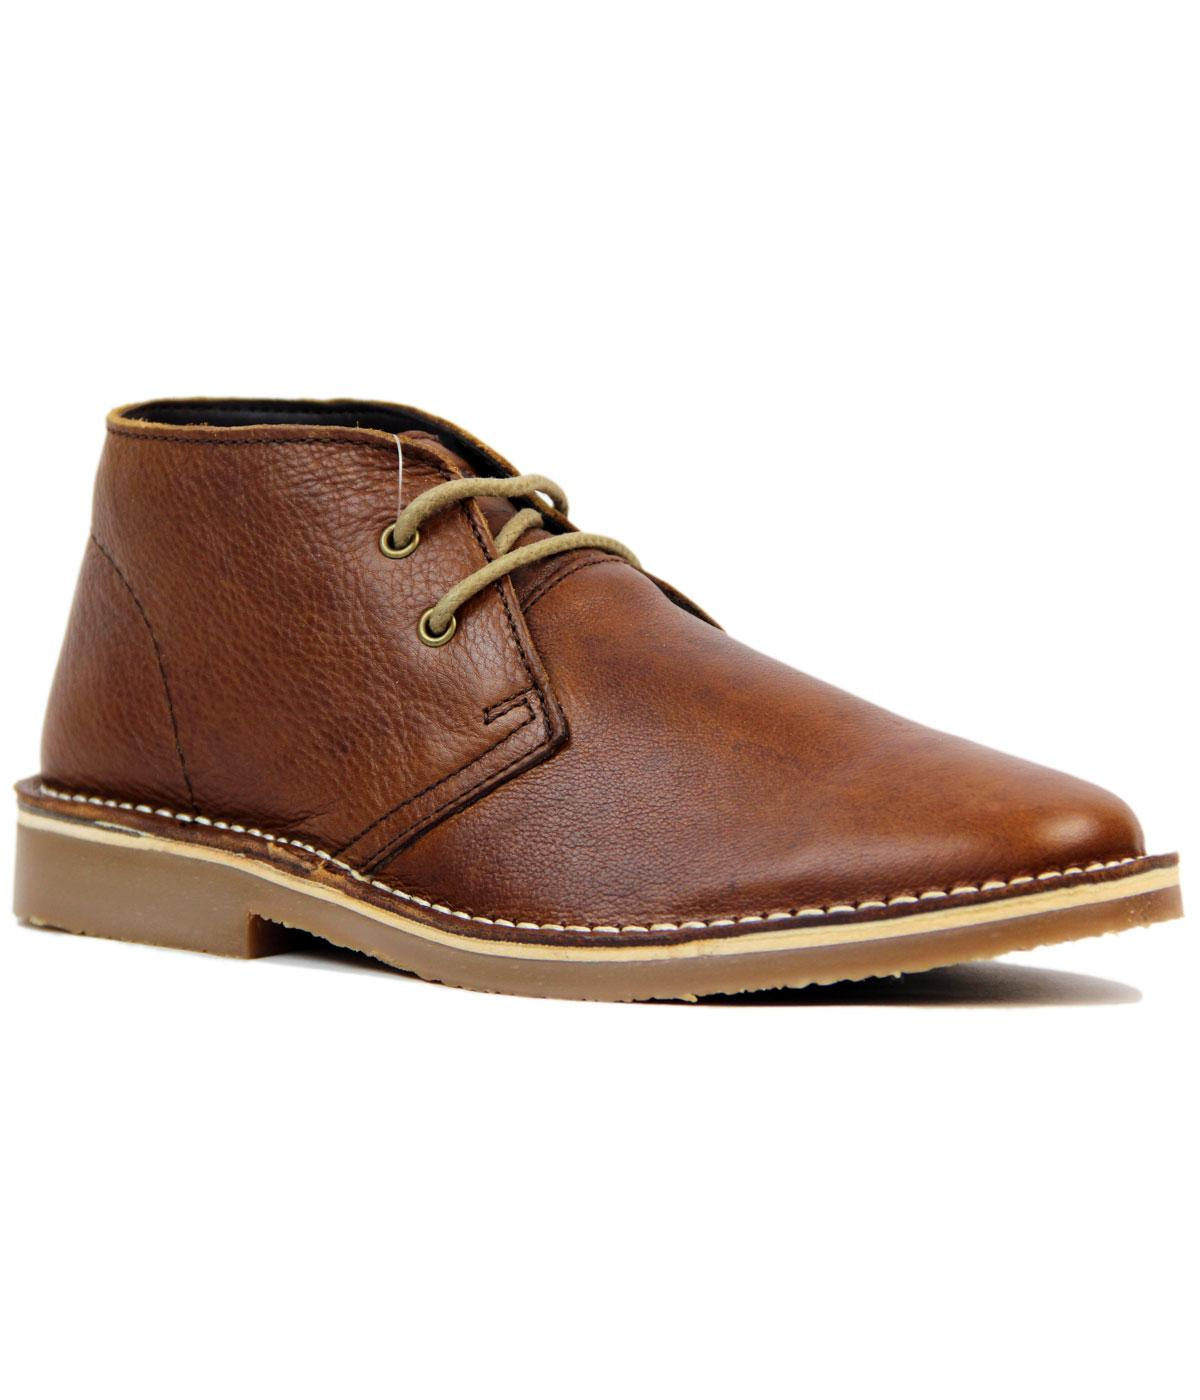 Perfect Desert Boot. Natural Veg Tan Leather - Originals Womens Boots - Clarksu00ae Shoes Official Site